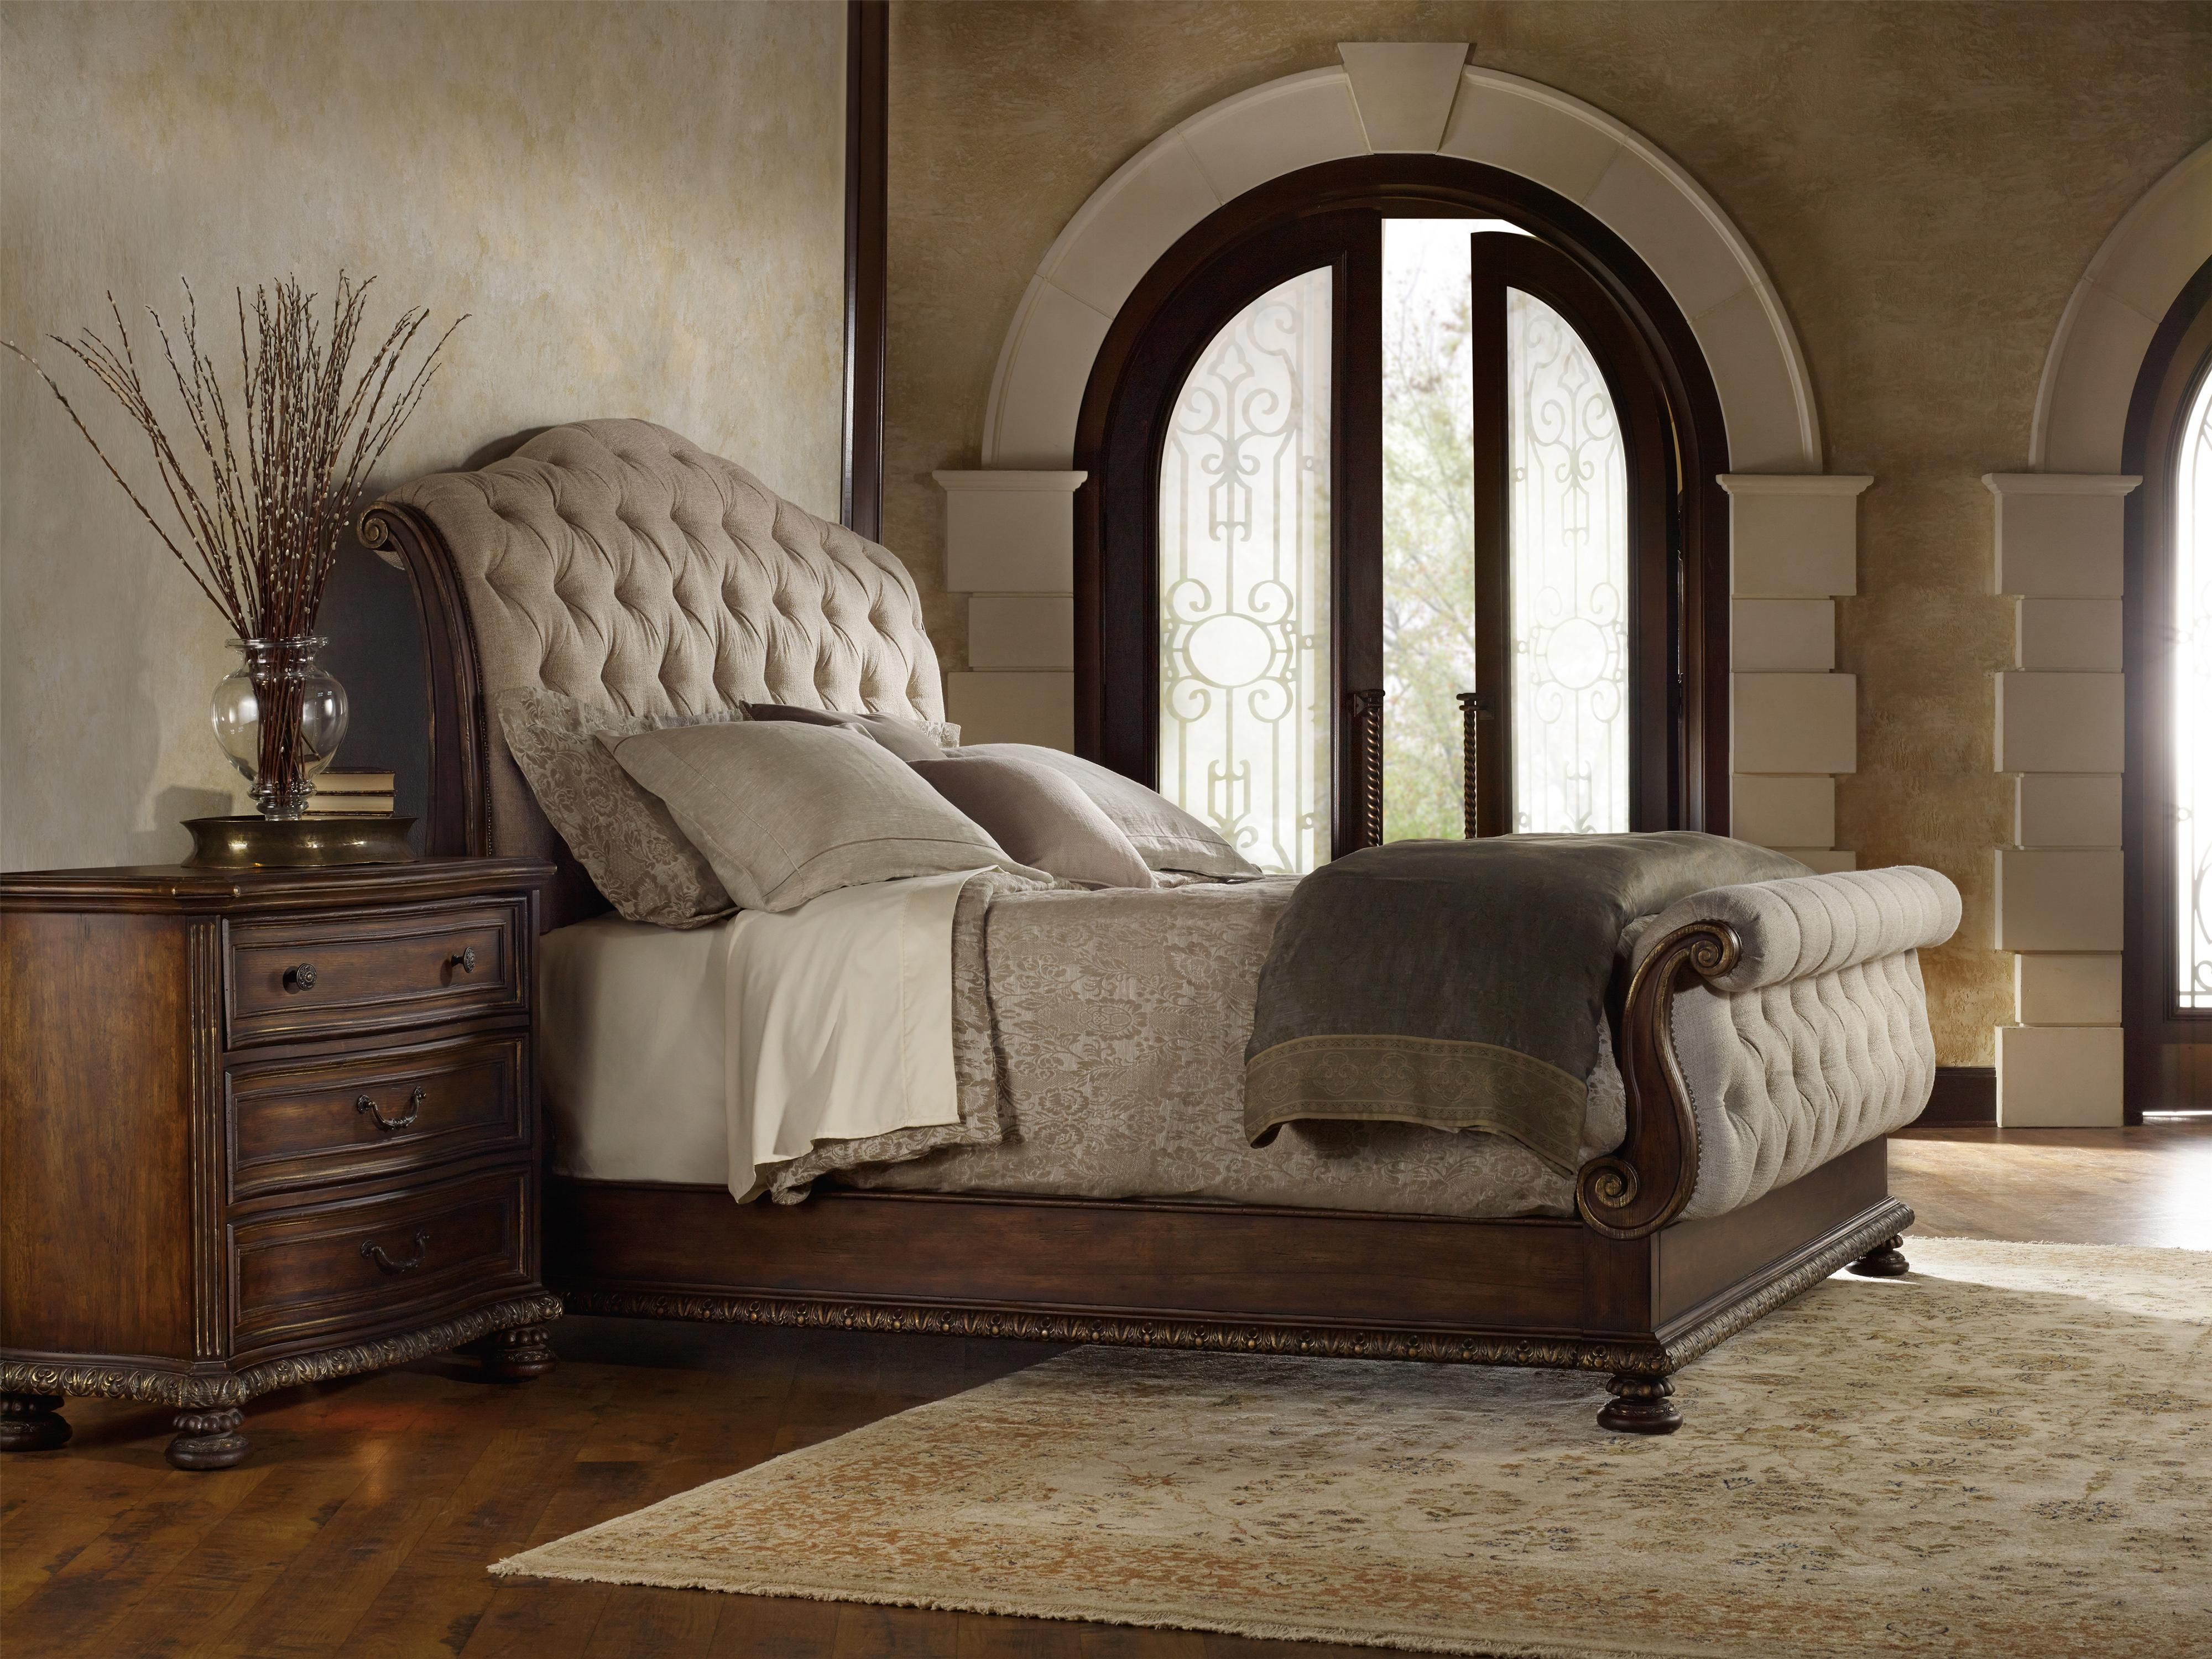 Adagio (5091) By Hooker Furniture   AHFA   Hooker Furniture Adagio Dealer.